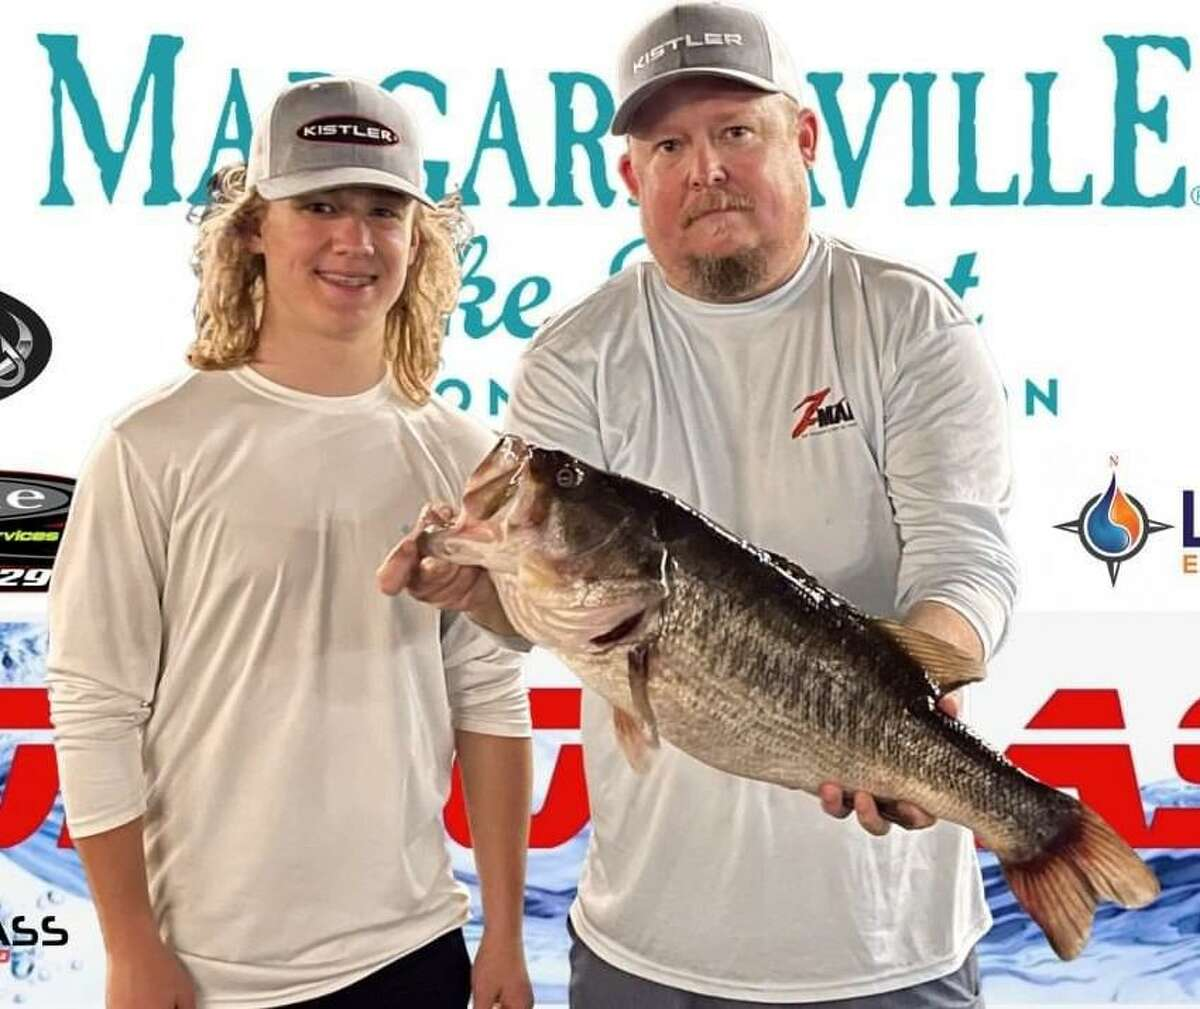 Chris and Jaxon Bohac came in third place in the CONROEBASS Tuesday Tournament with a weight of 8.53 pounds.